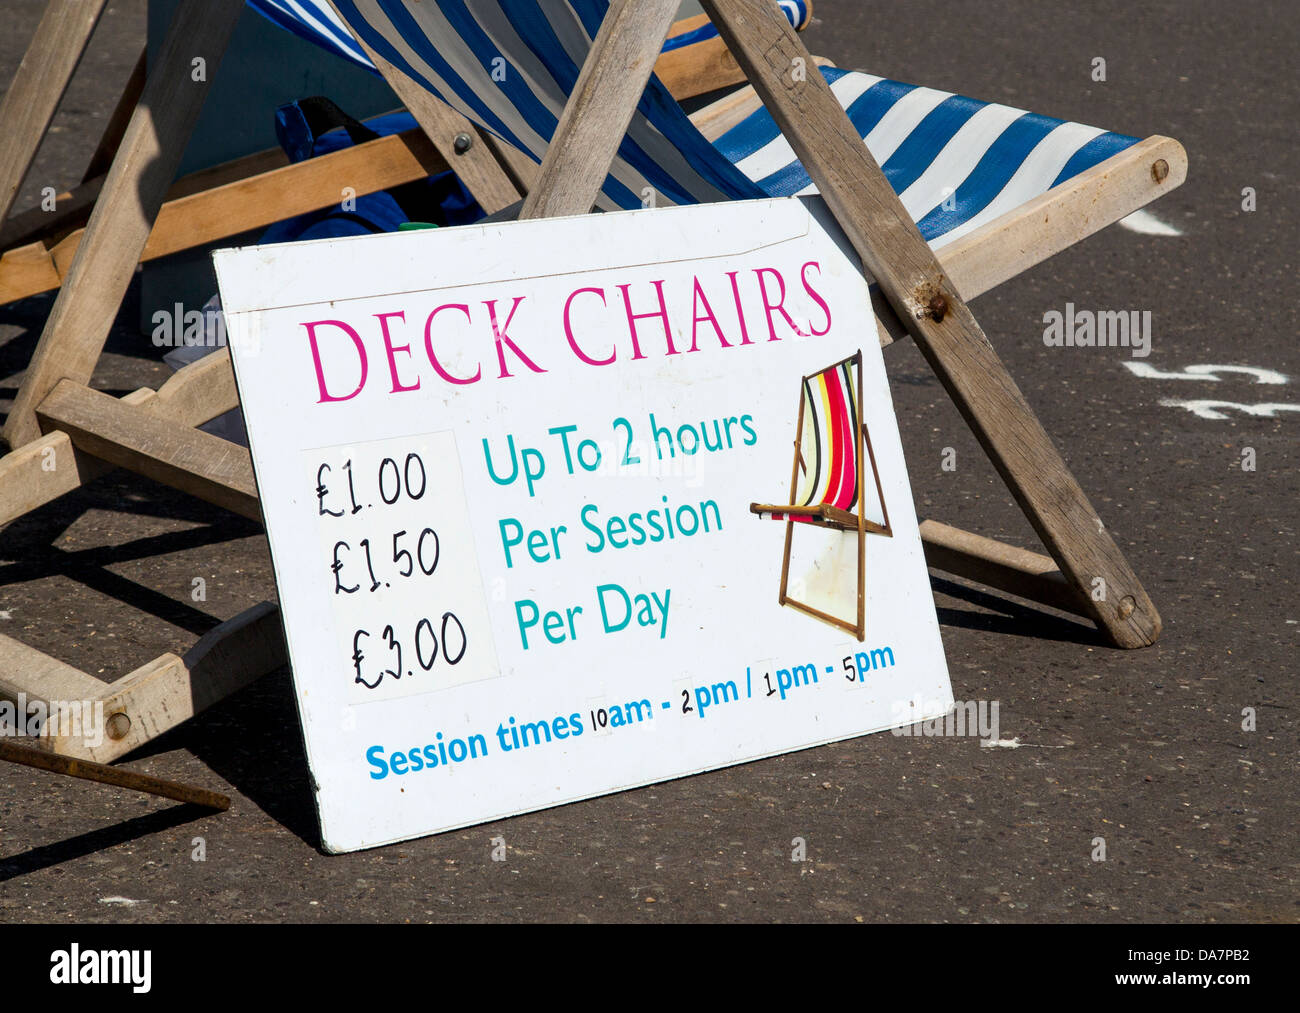 Deck chair hire sign in Sidmouth, Devon, England - Stock Image